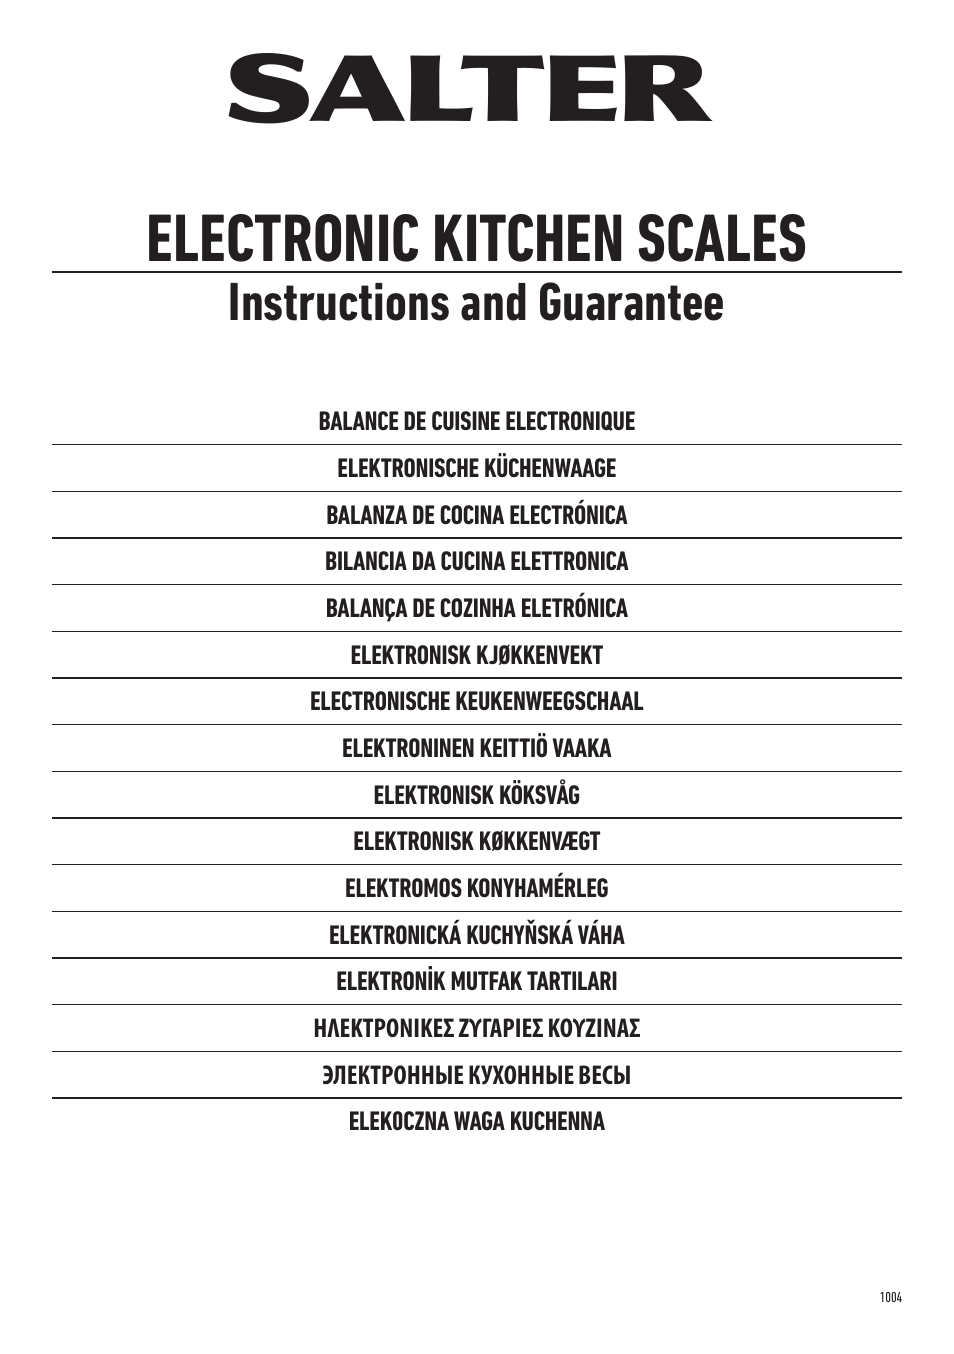 Salter 1004 Ssdr Stainless Steel Electronic Kitchen Scale User